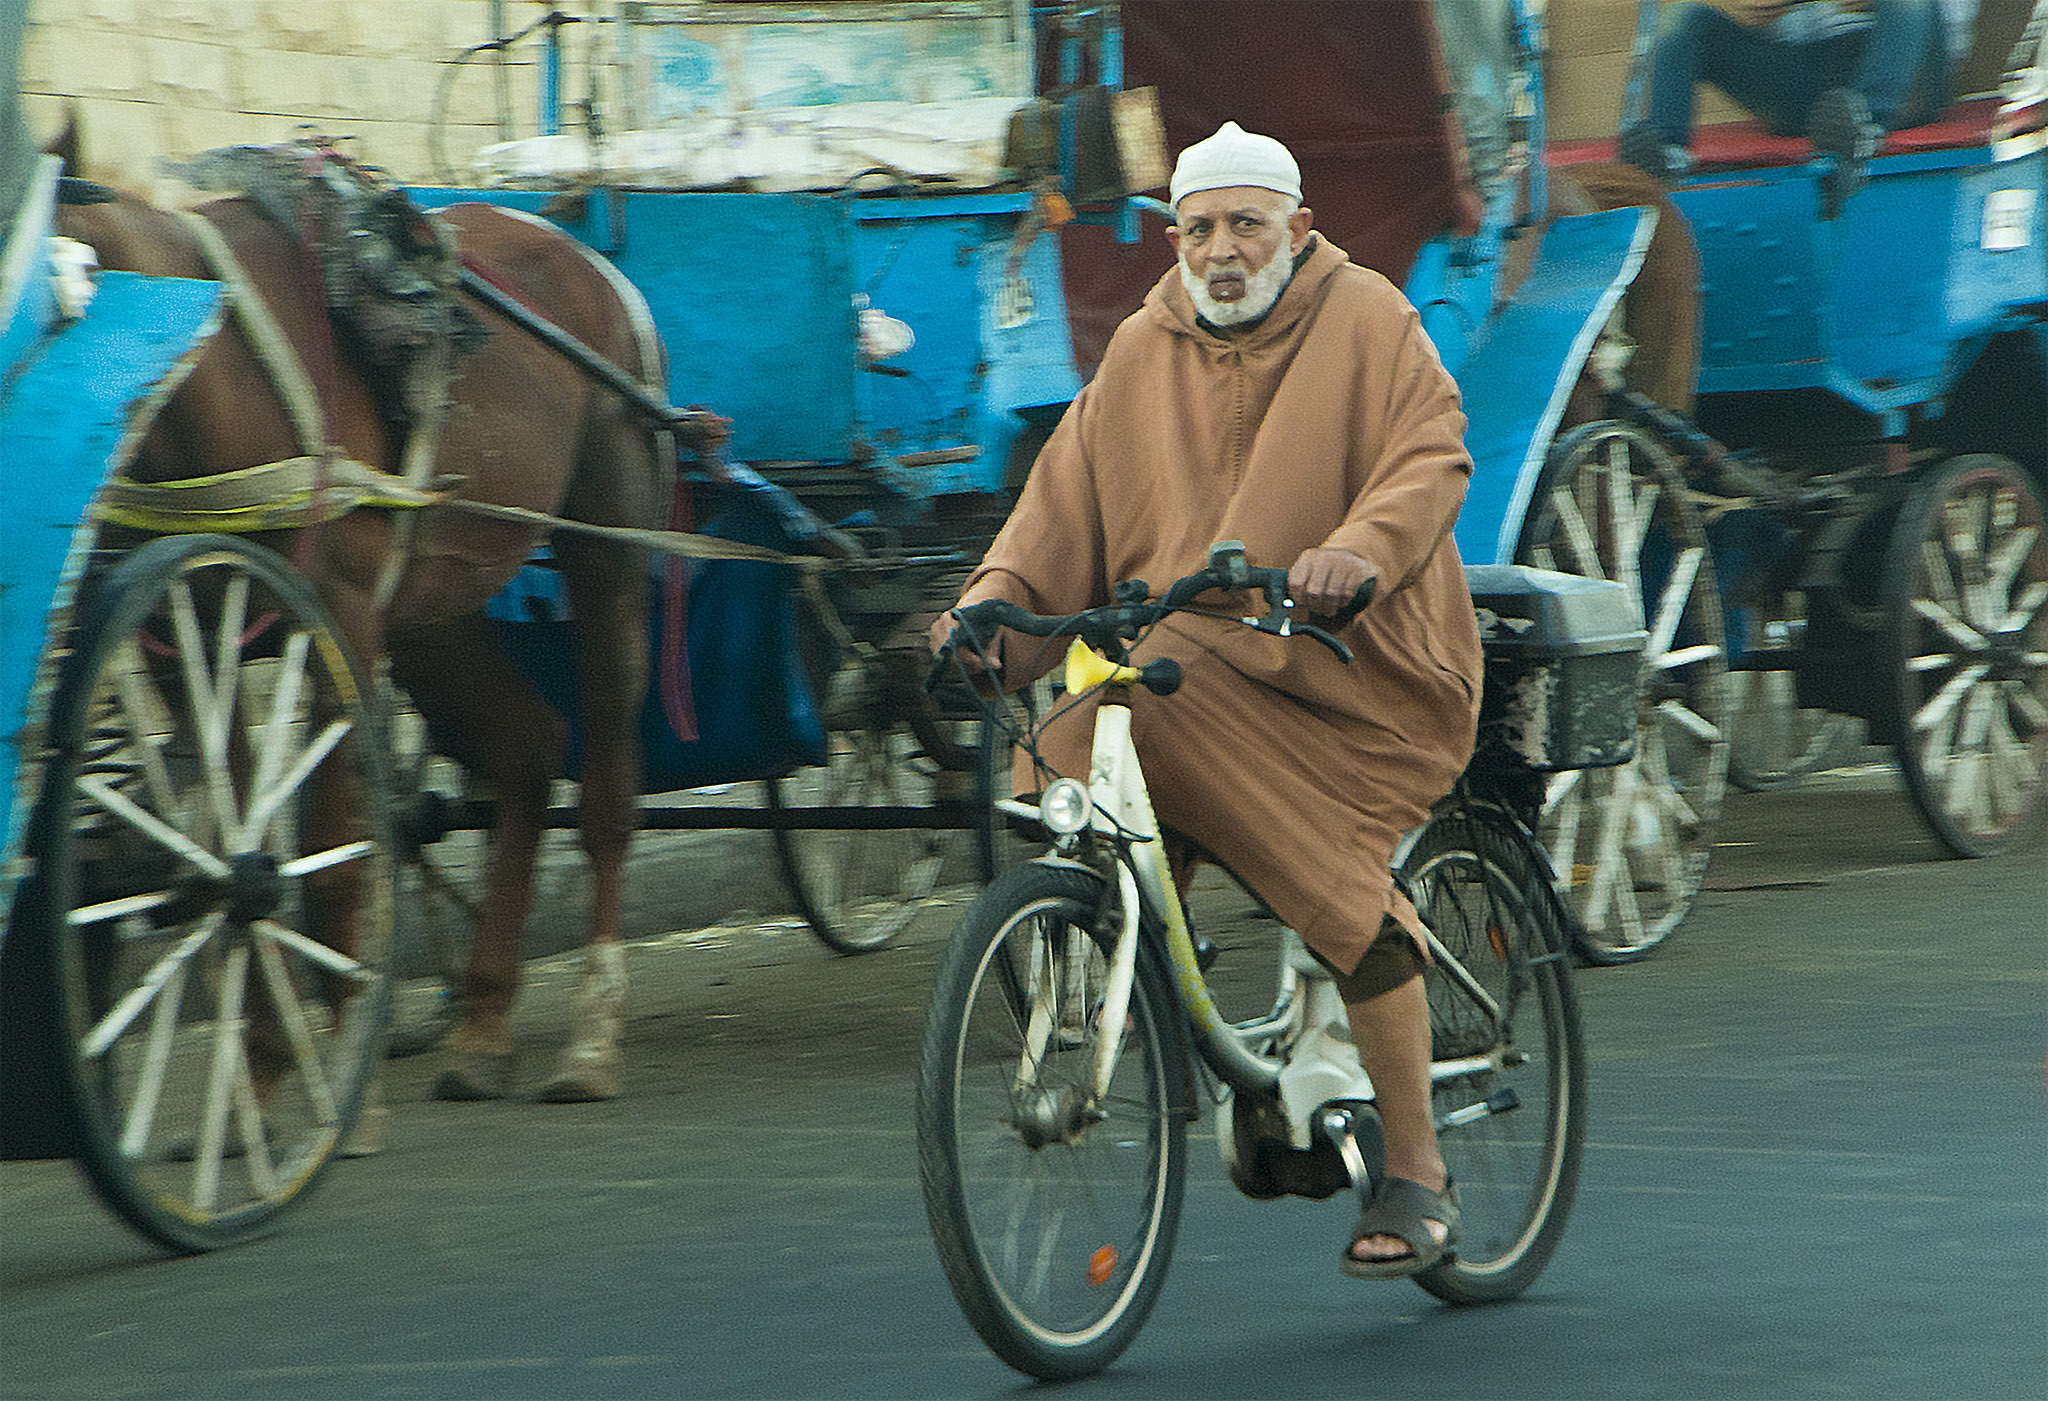 Bicycle man by mohamed.srai.3